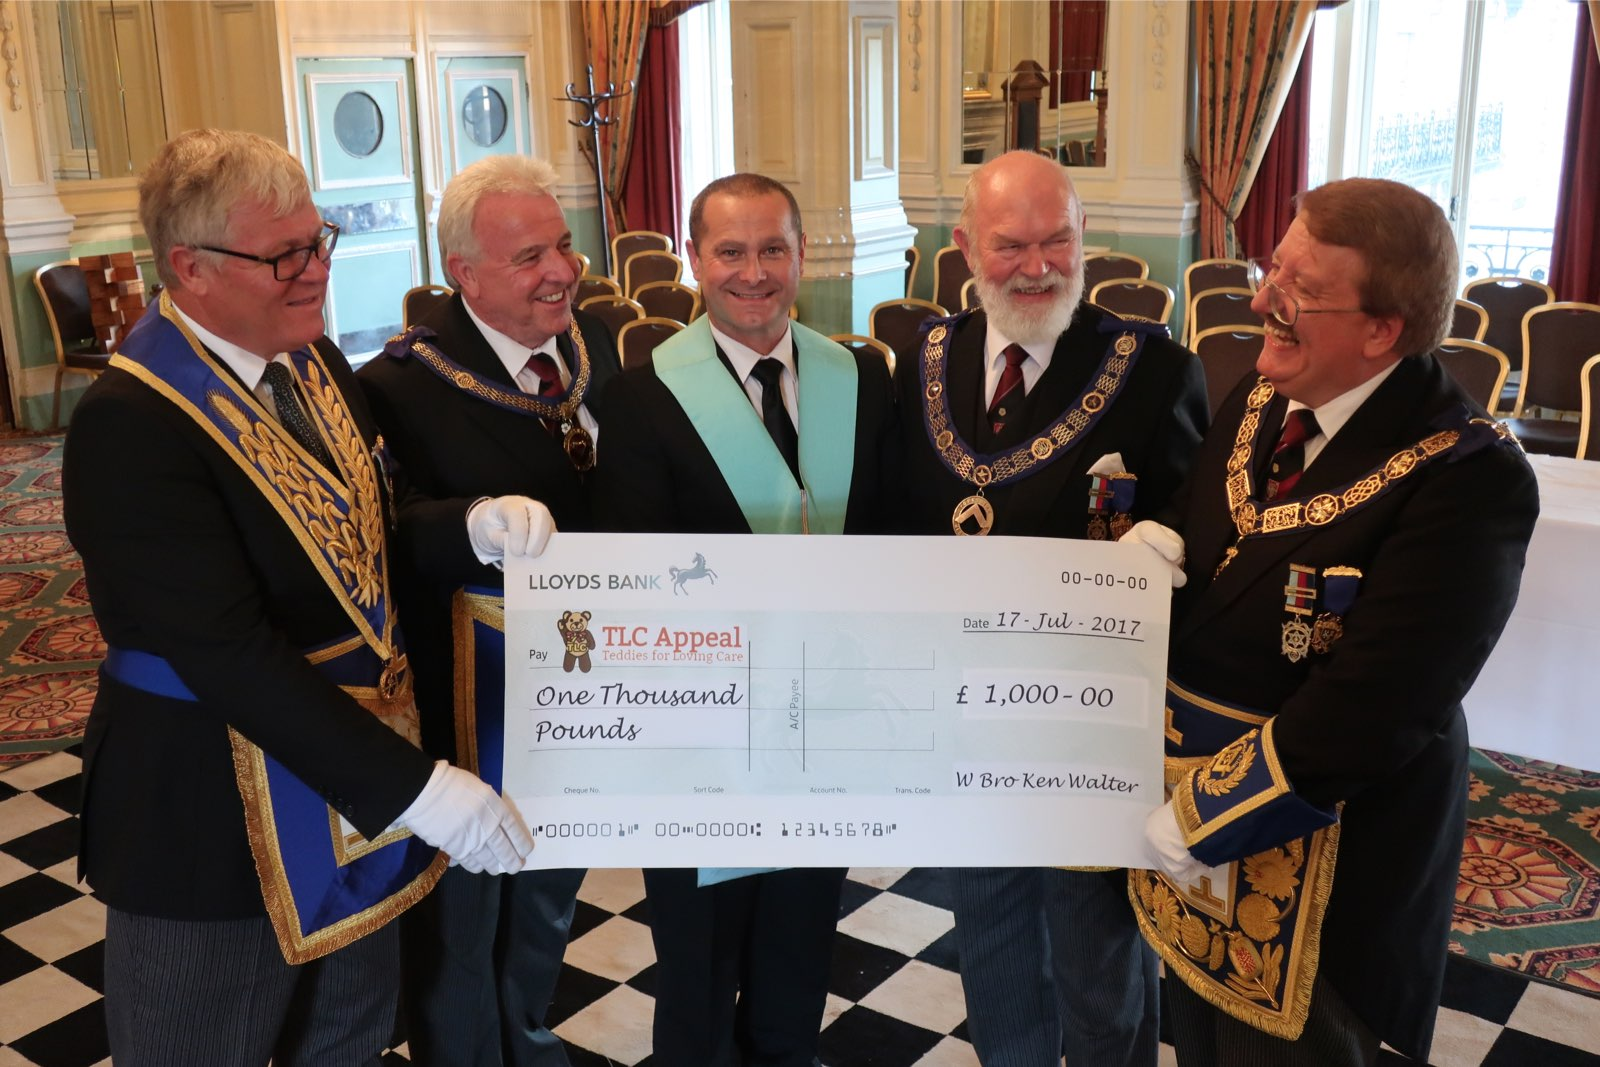 Photo (from L to R) W Bro John Watson (Charity Steward), W Bro Roger Newhouse (APGM), W Bro John Eaton (stand-in Master for the visit), VW Bro Stuart Grantham (DPGM) & RW Bro David Pratt (PGM) with the cheque for £1,000 to TLC